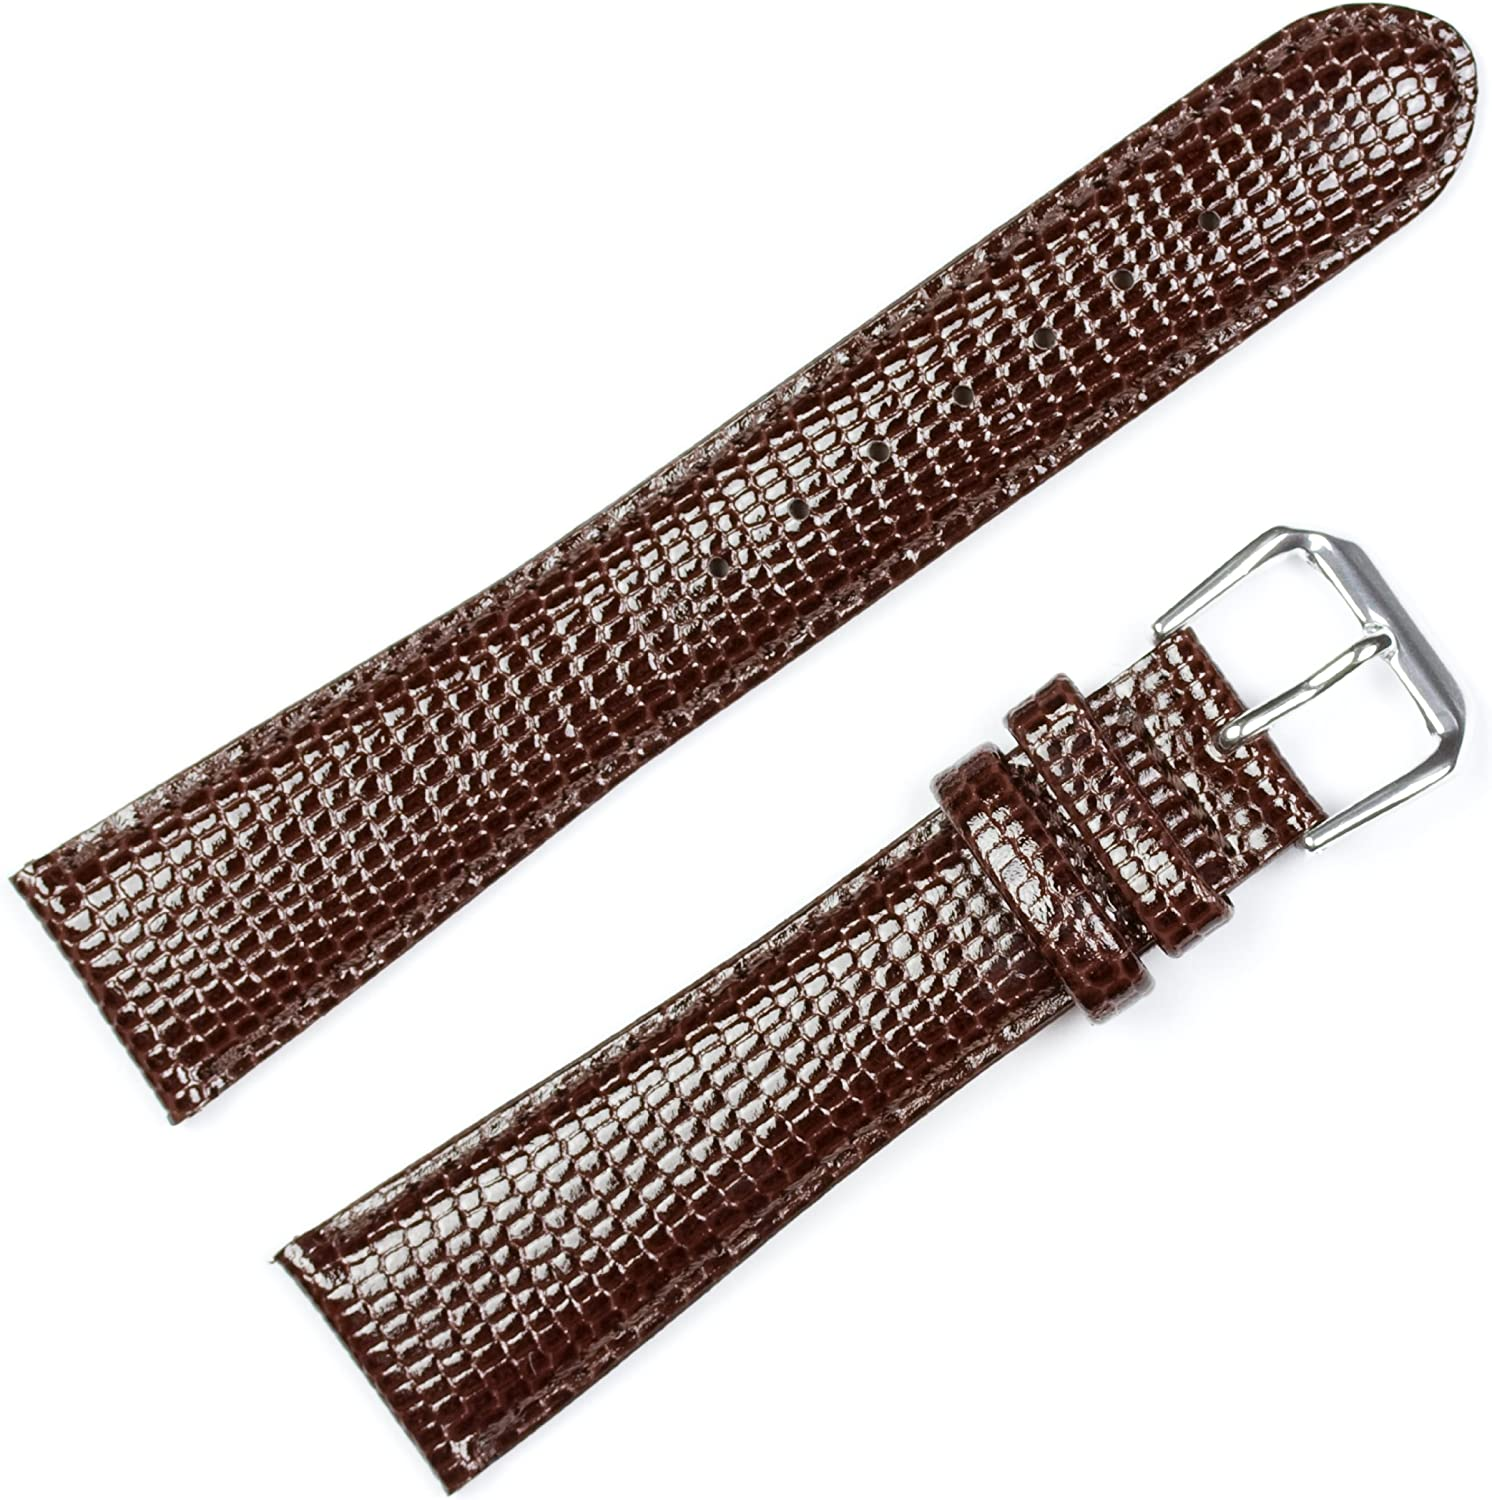 Lizard Grain Leather Sale item Watch Band - depot of Choice Color Black Brow